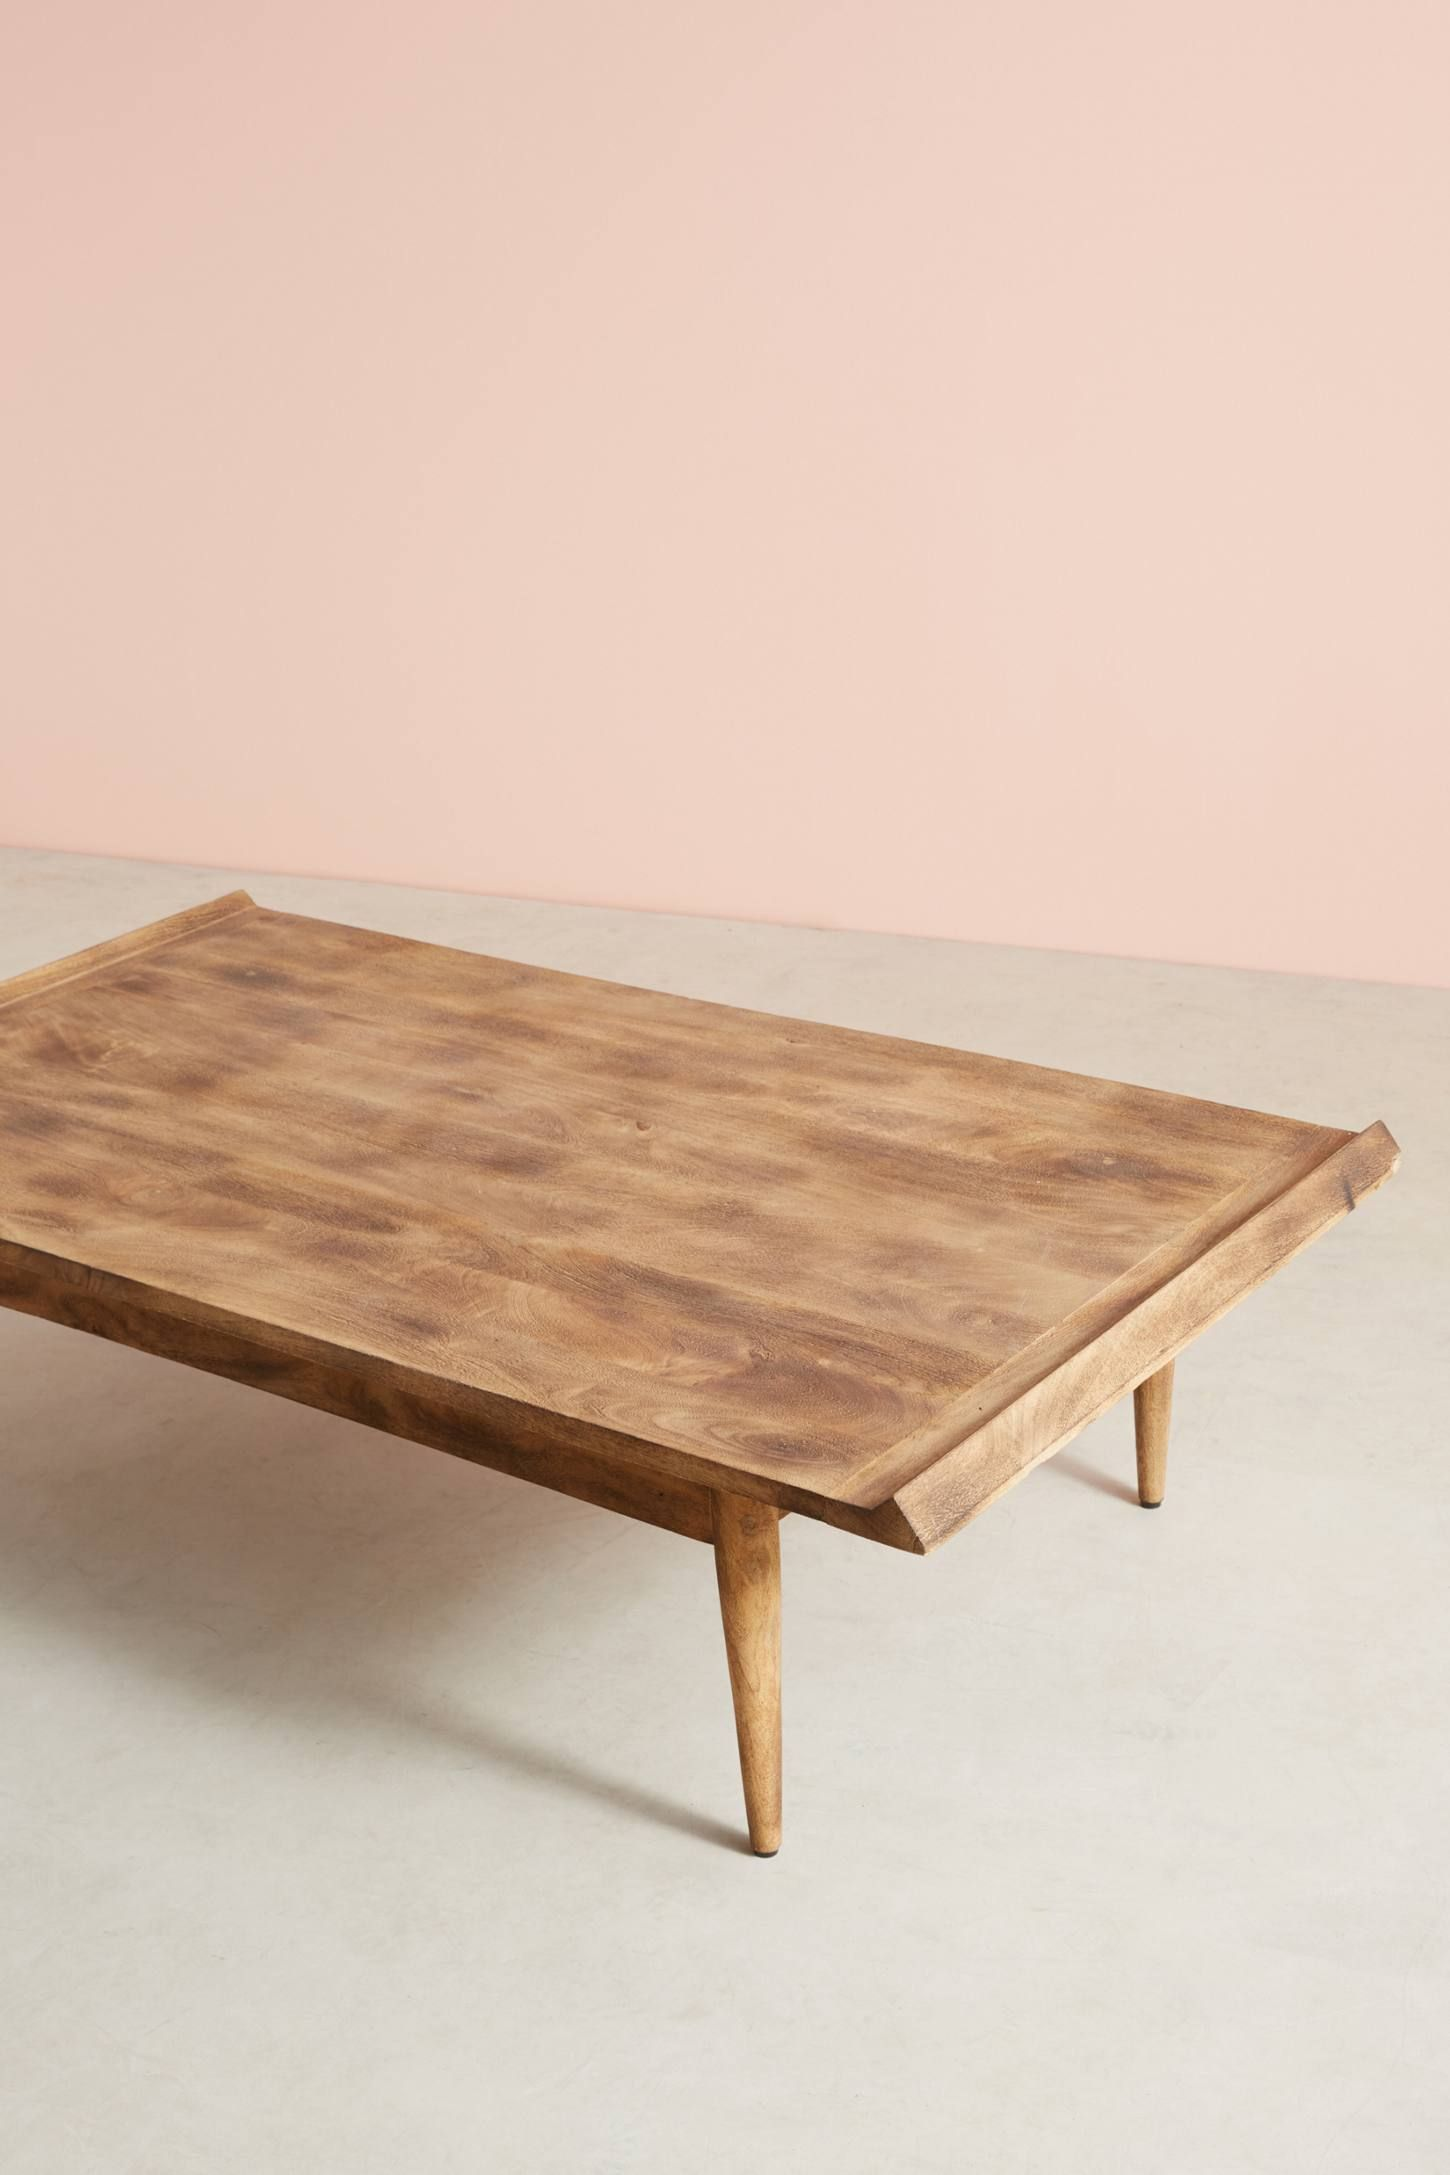 Burnished Wood Coffee Table Coffee Table Coffee Table Wood Table